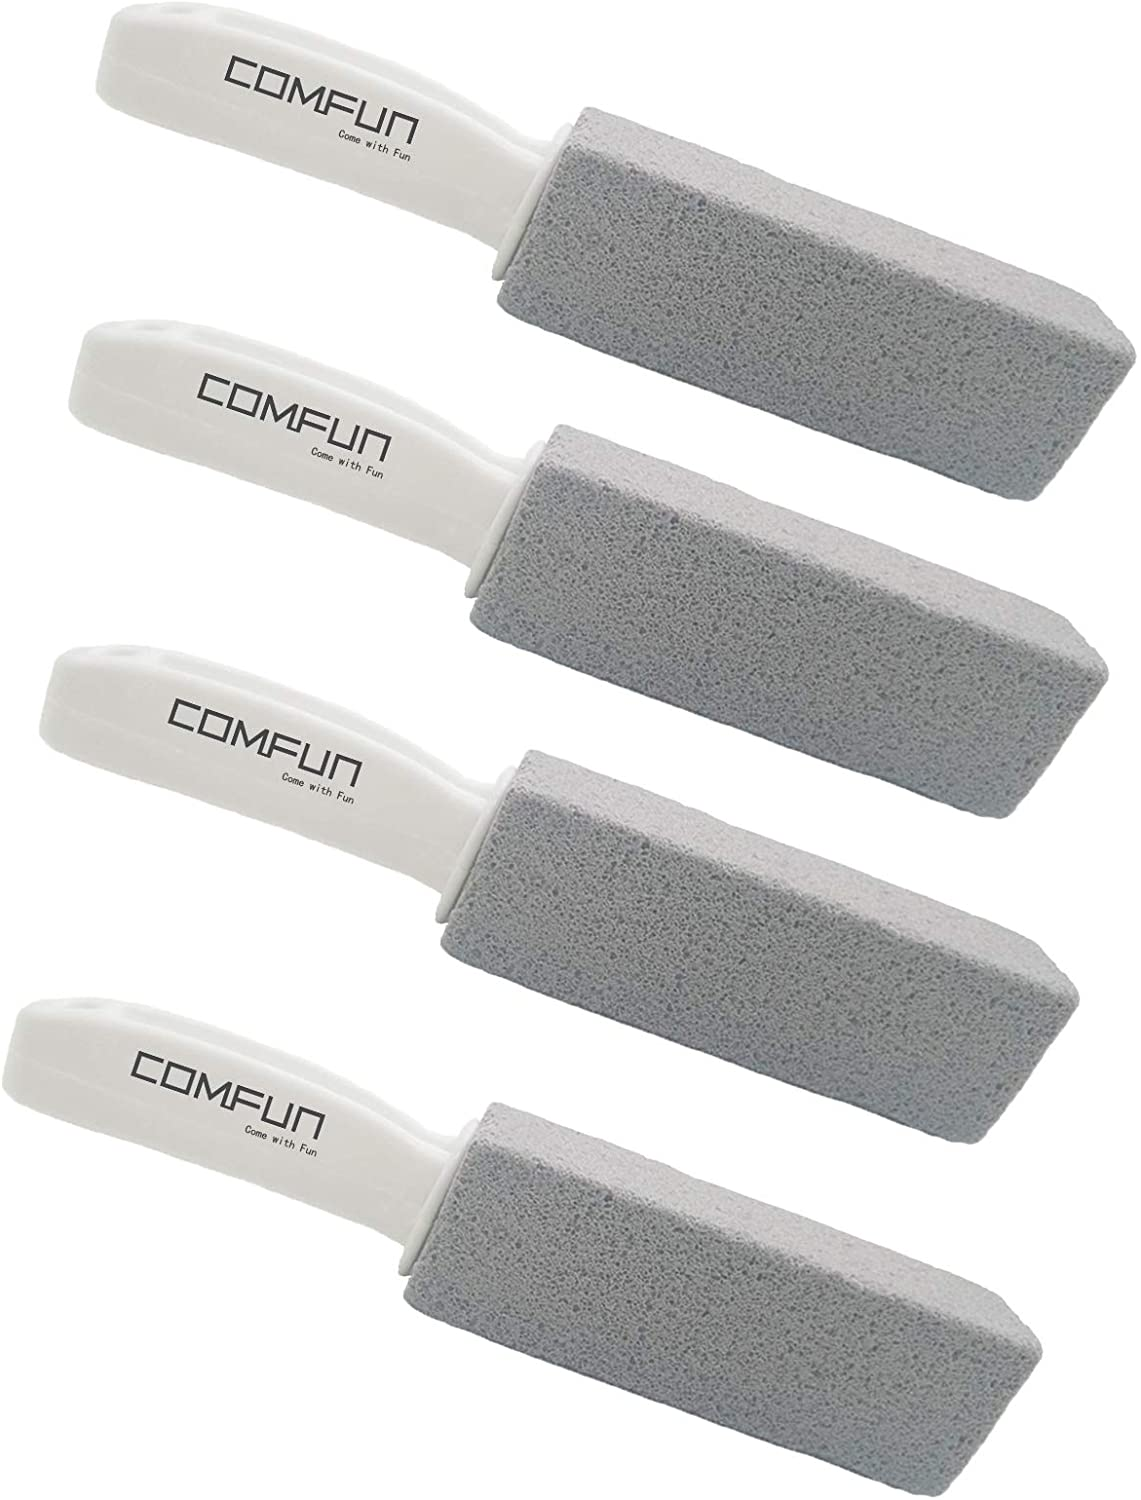 Comfun Pumice Stone for Cleaning Toilet Bowl with Handle, Pumice Stick Pumice Scouring Pad for Cleaning, 4 Pack